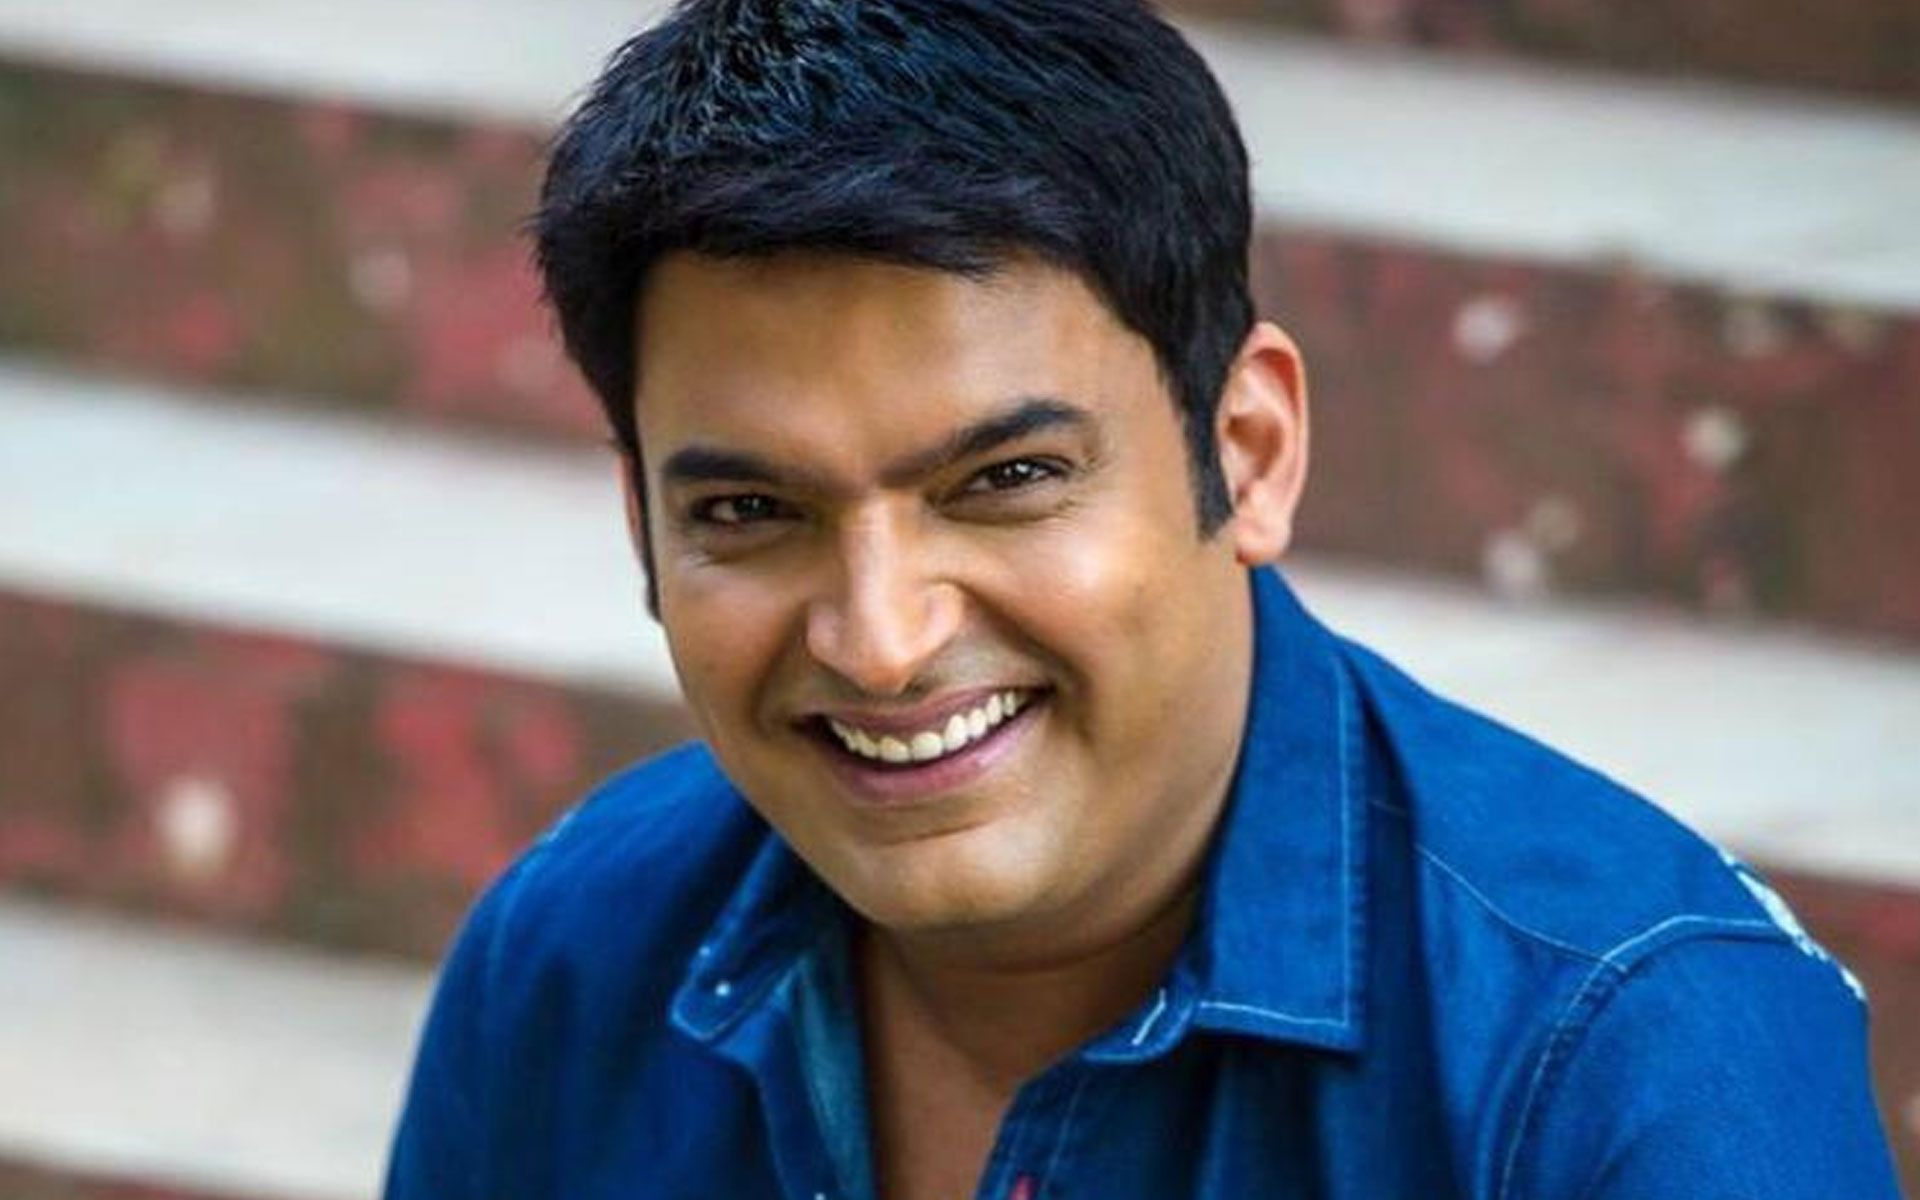 Kapil Sharma Is All Set To Return With His Comedy Show